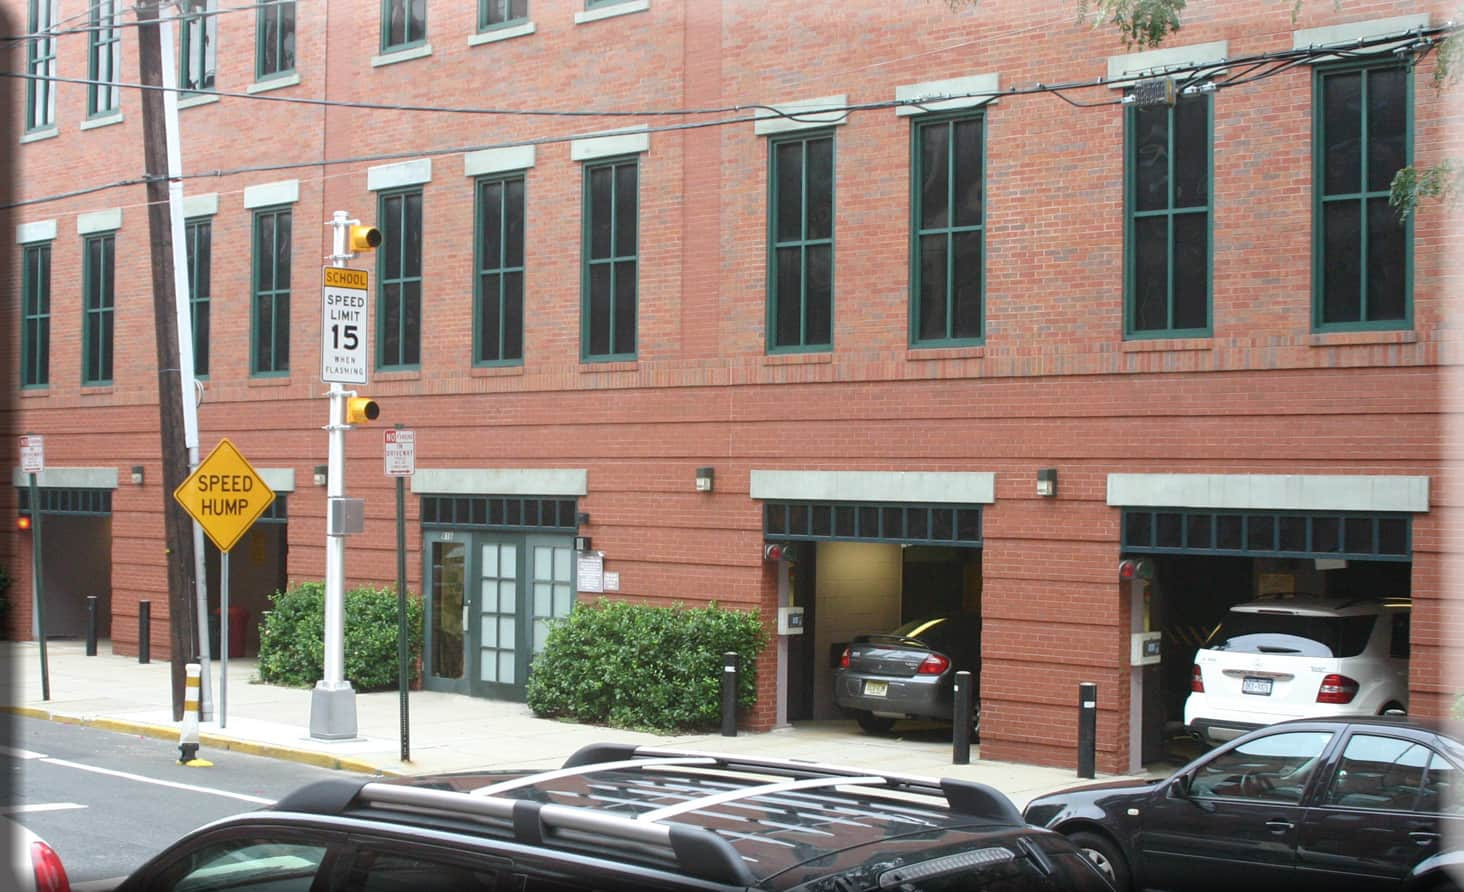 ... 9th and 10th Streets and available for residents, visitors, and businesses. The project was designed to be embedded within a city block of residential ...